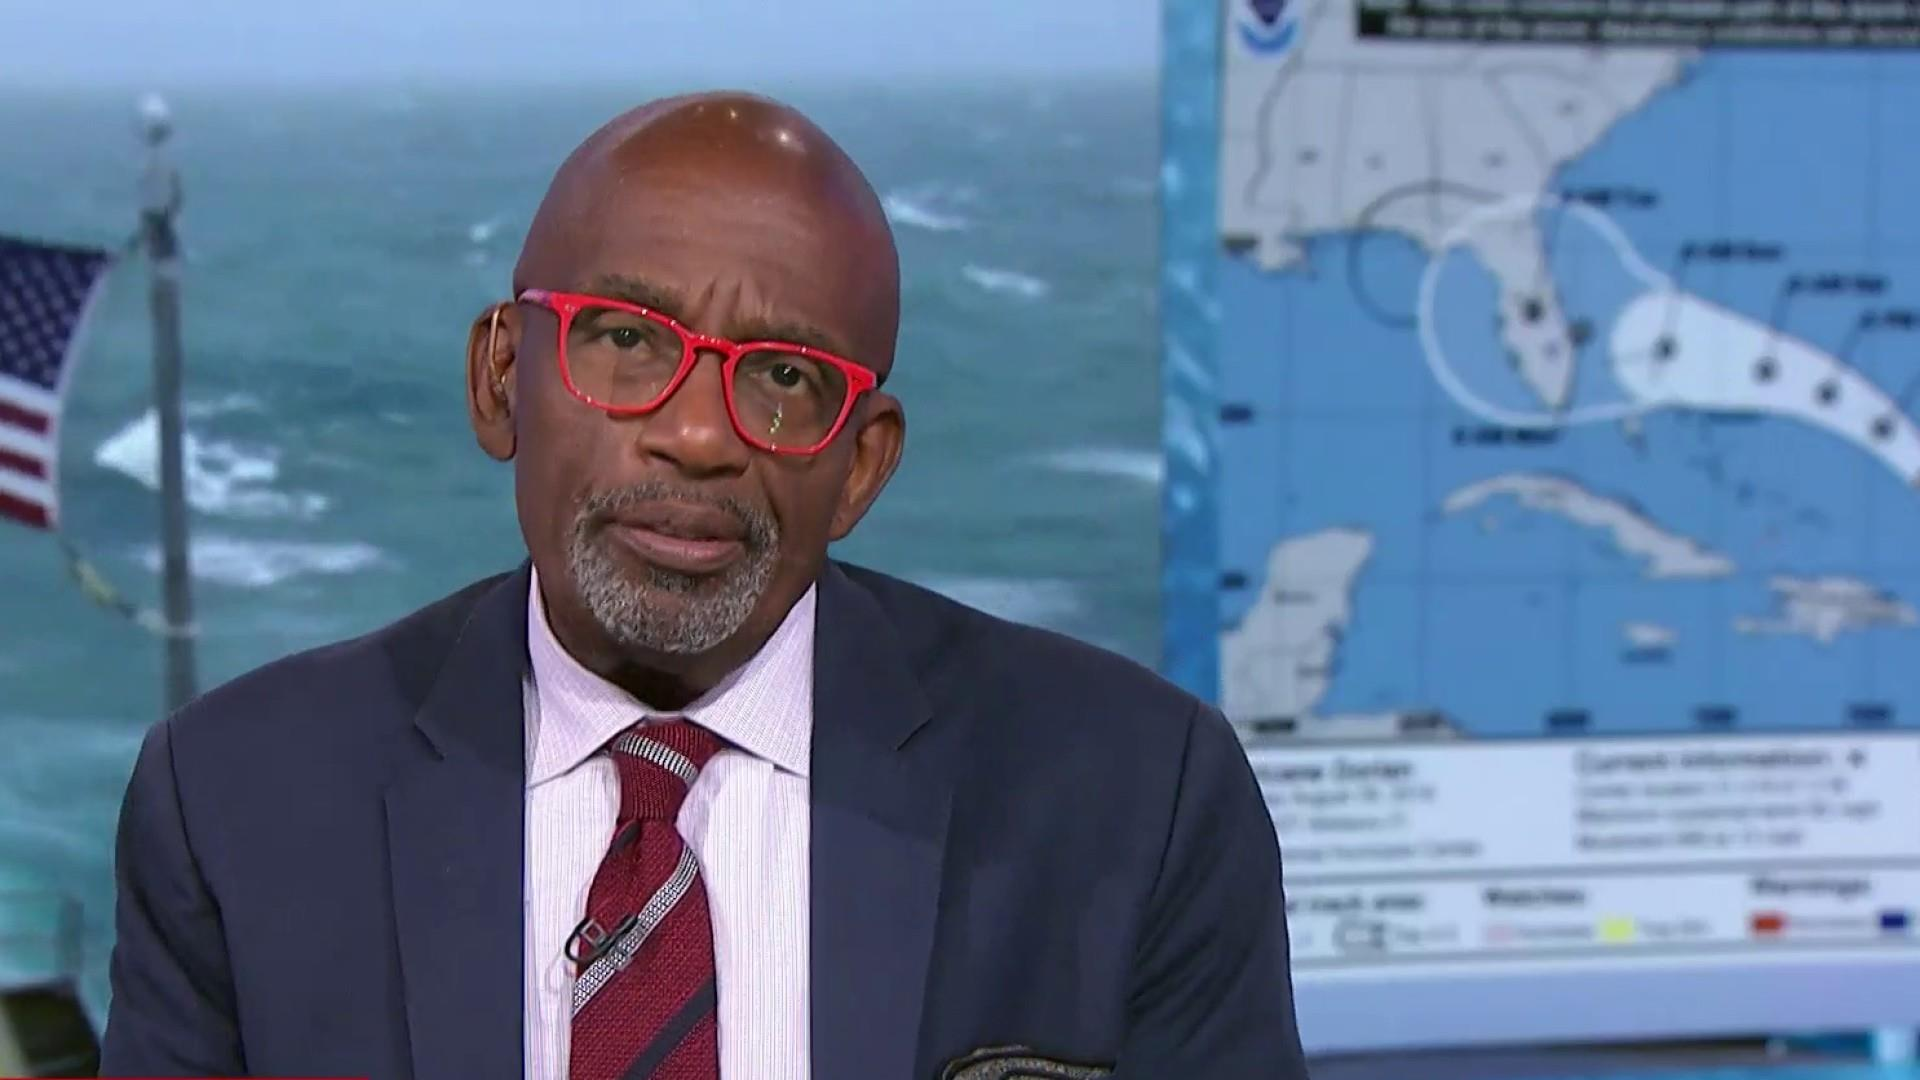 Al Roker: Sharpiegate is a distraction. Let's move on.